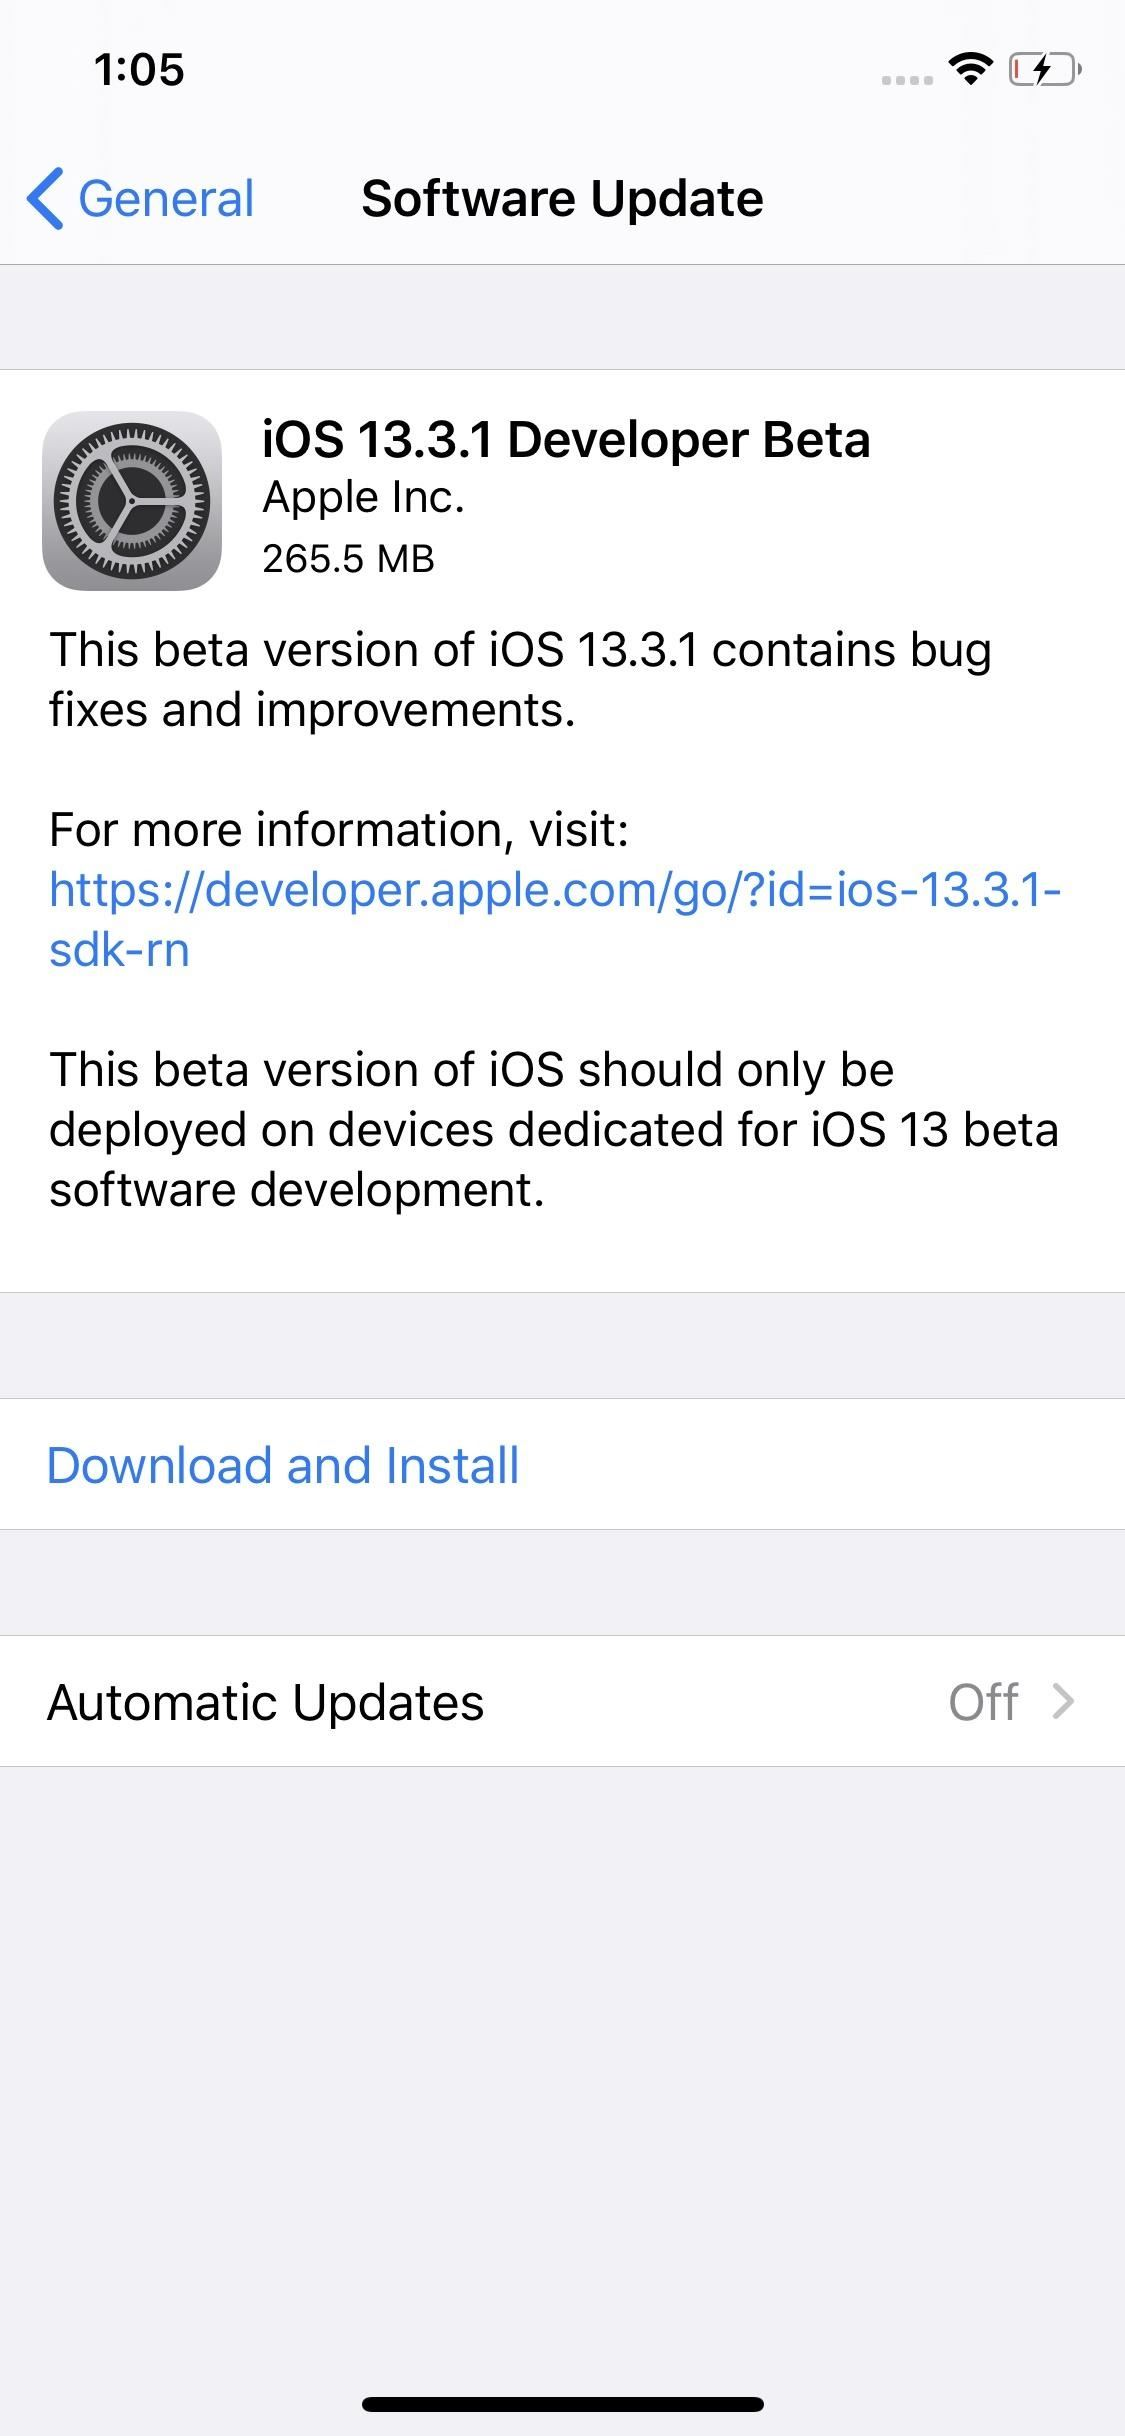 Apple Releases iOS 13.3.1 Developer Beta 1 for iPhone